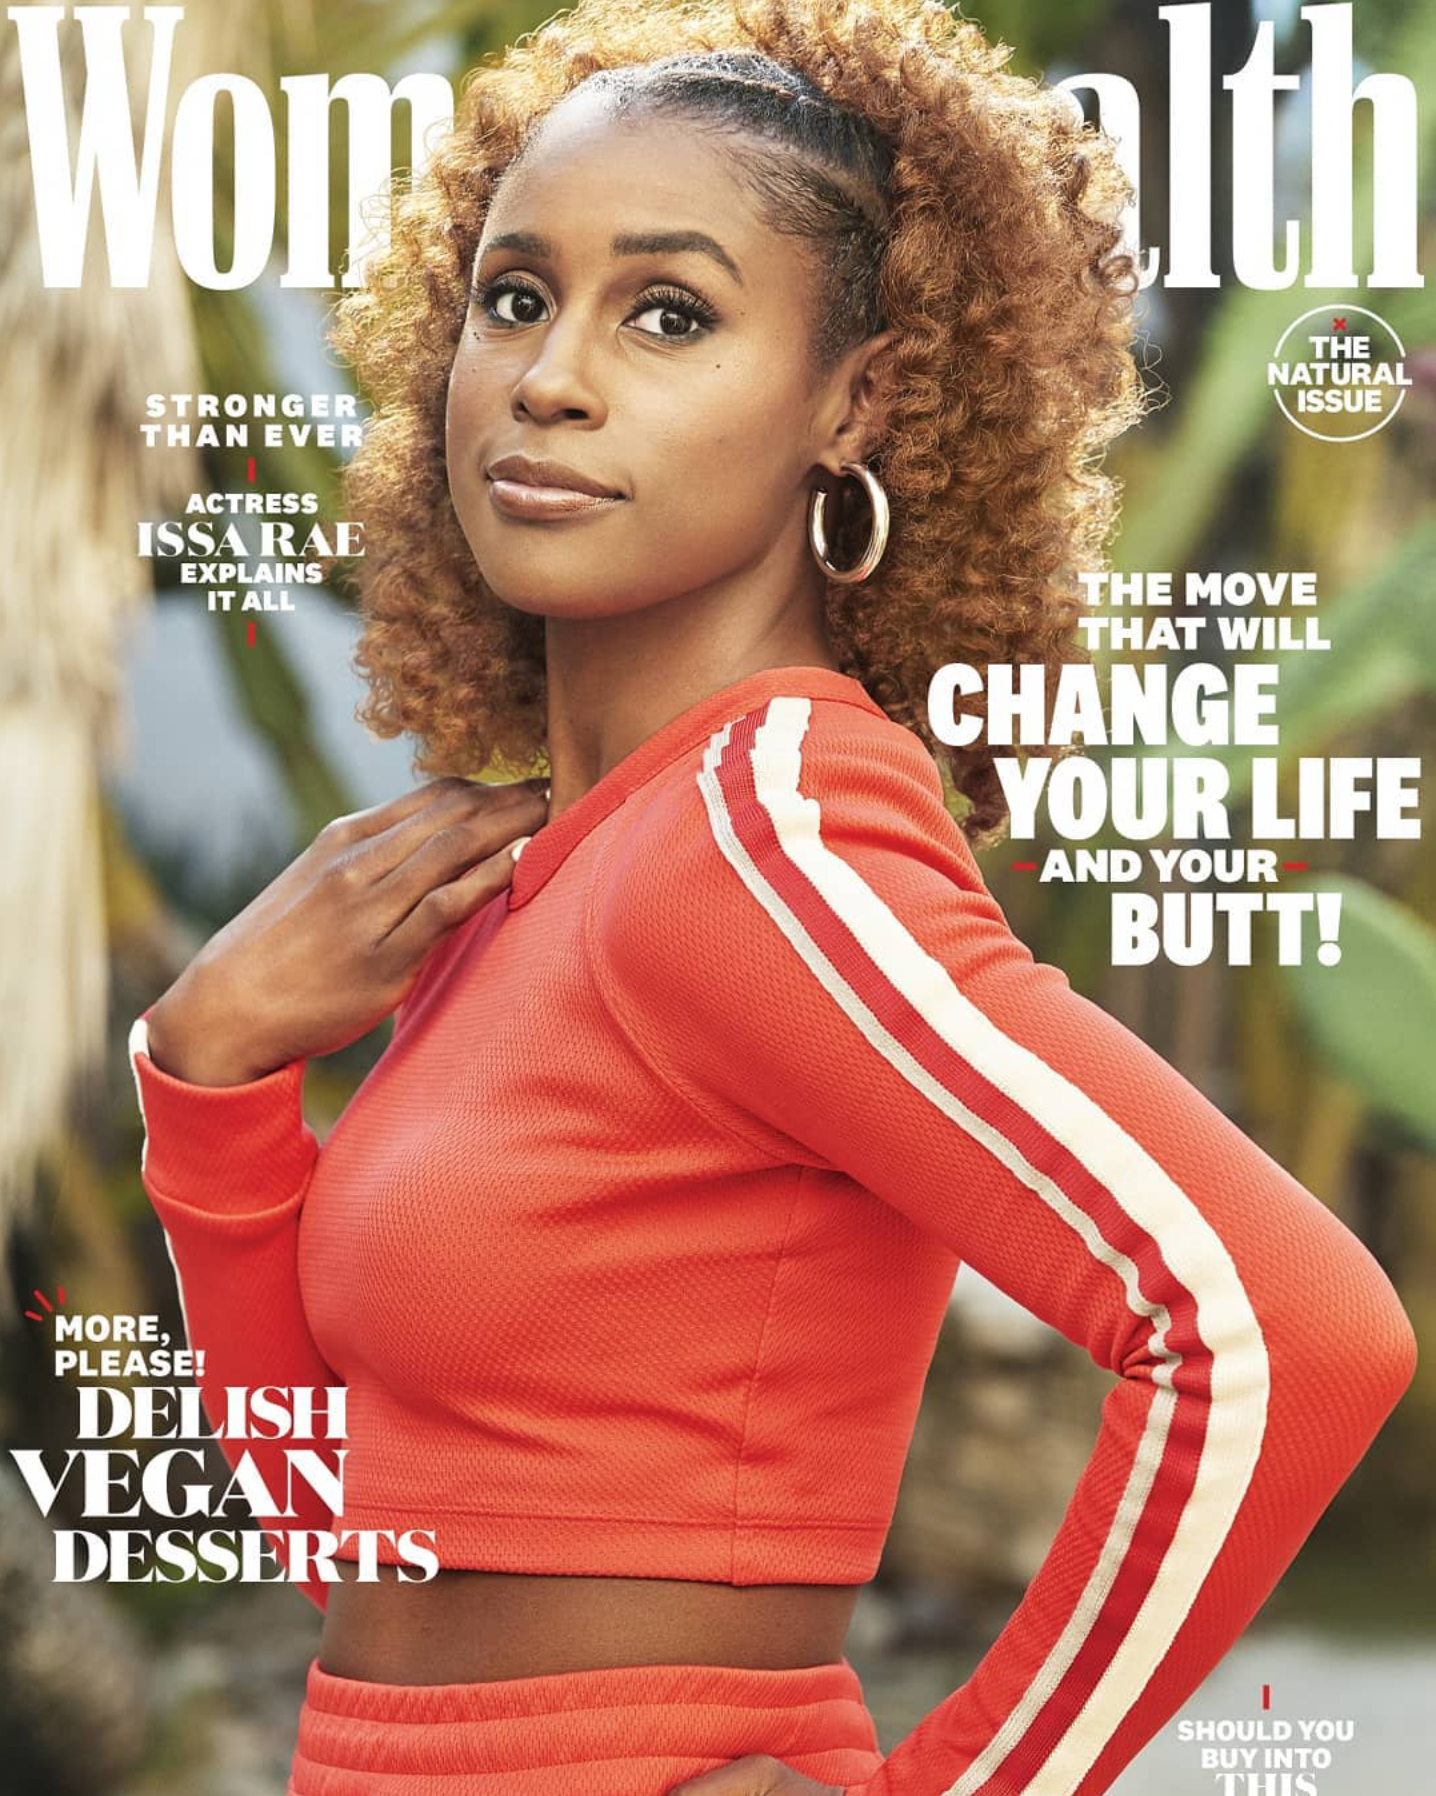 WOMEN'S HEALTH MAGAZINE THE NATURAL ISSUE 2019 ISSA RAE COVER 2.png